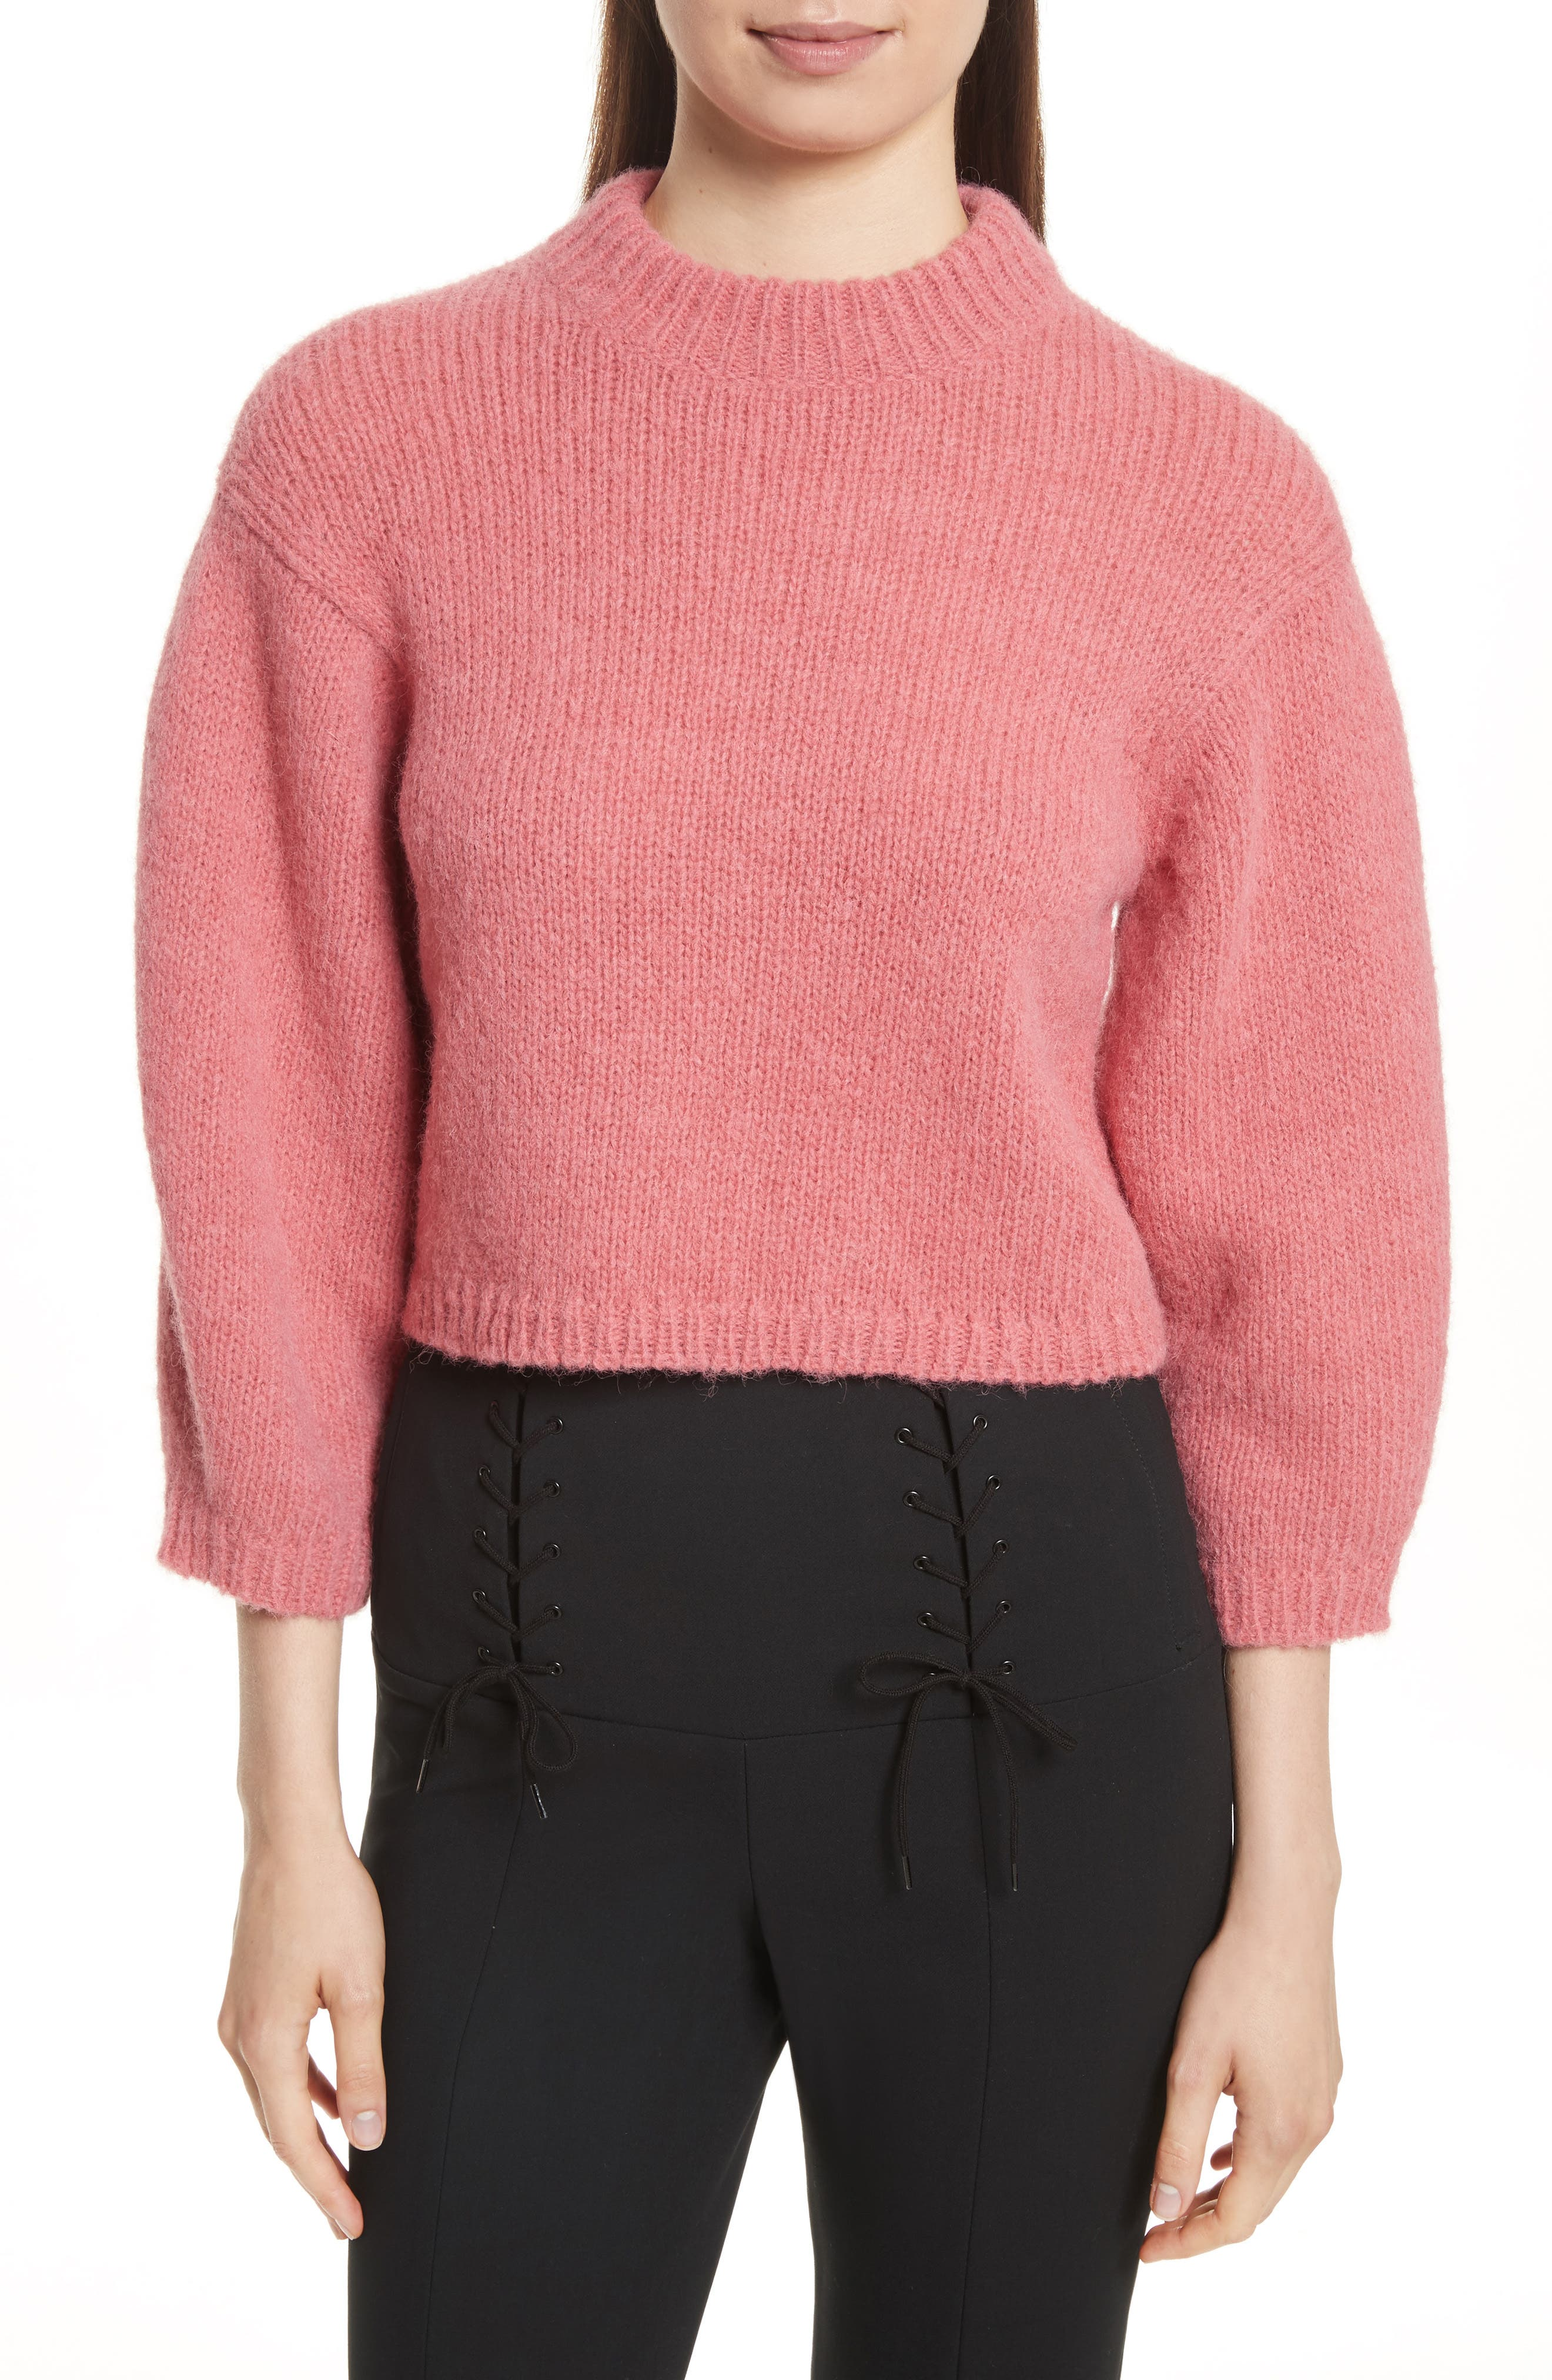 Cozette Cropped Pullover,                             Main thumbnail 1, color,                             695